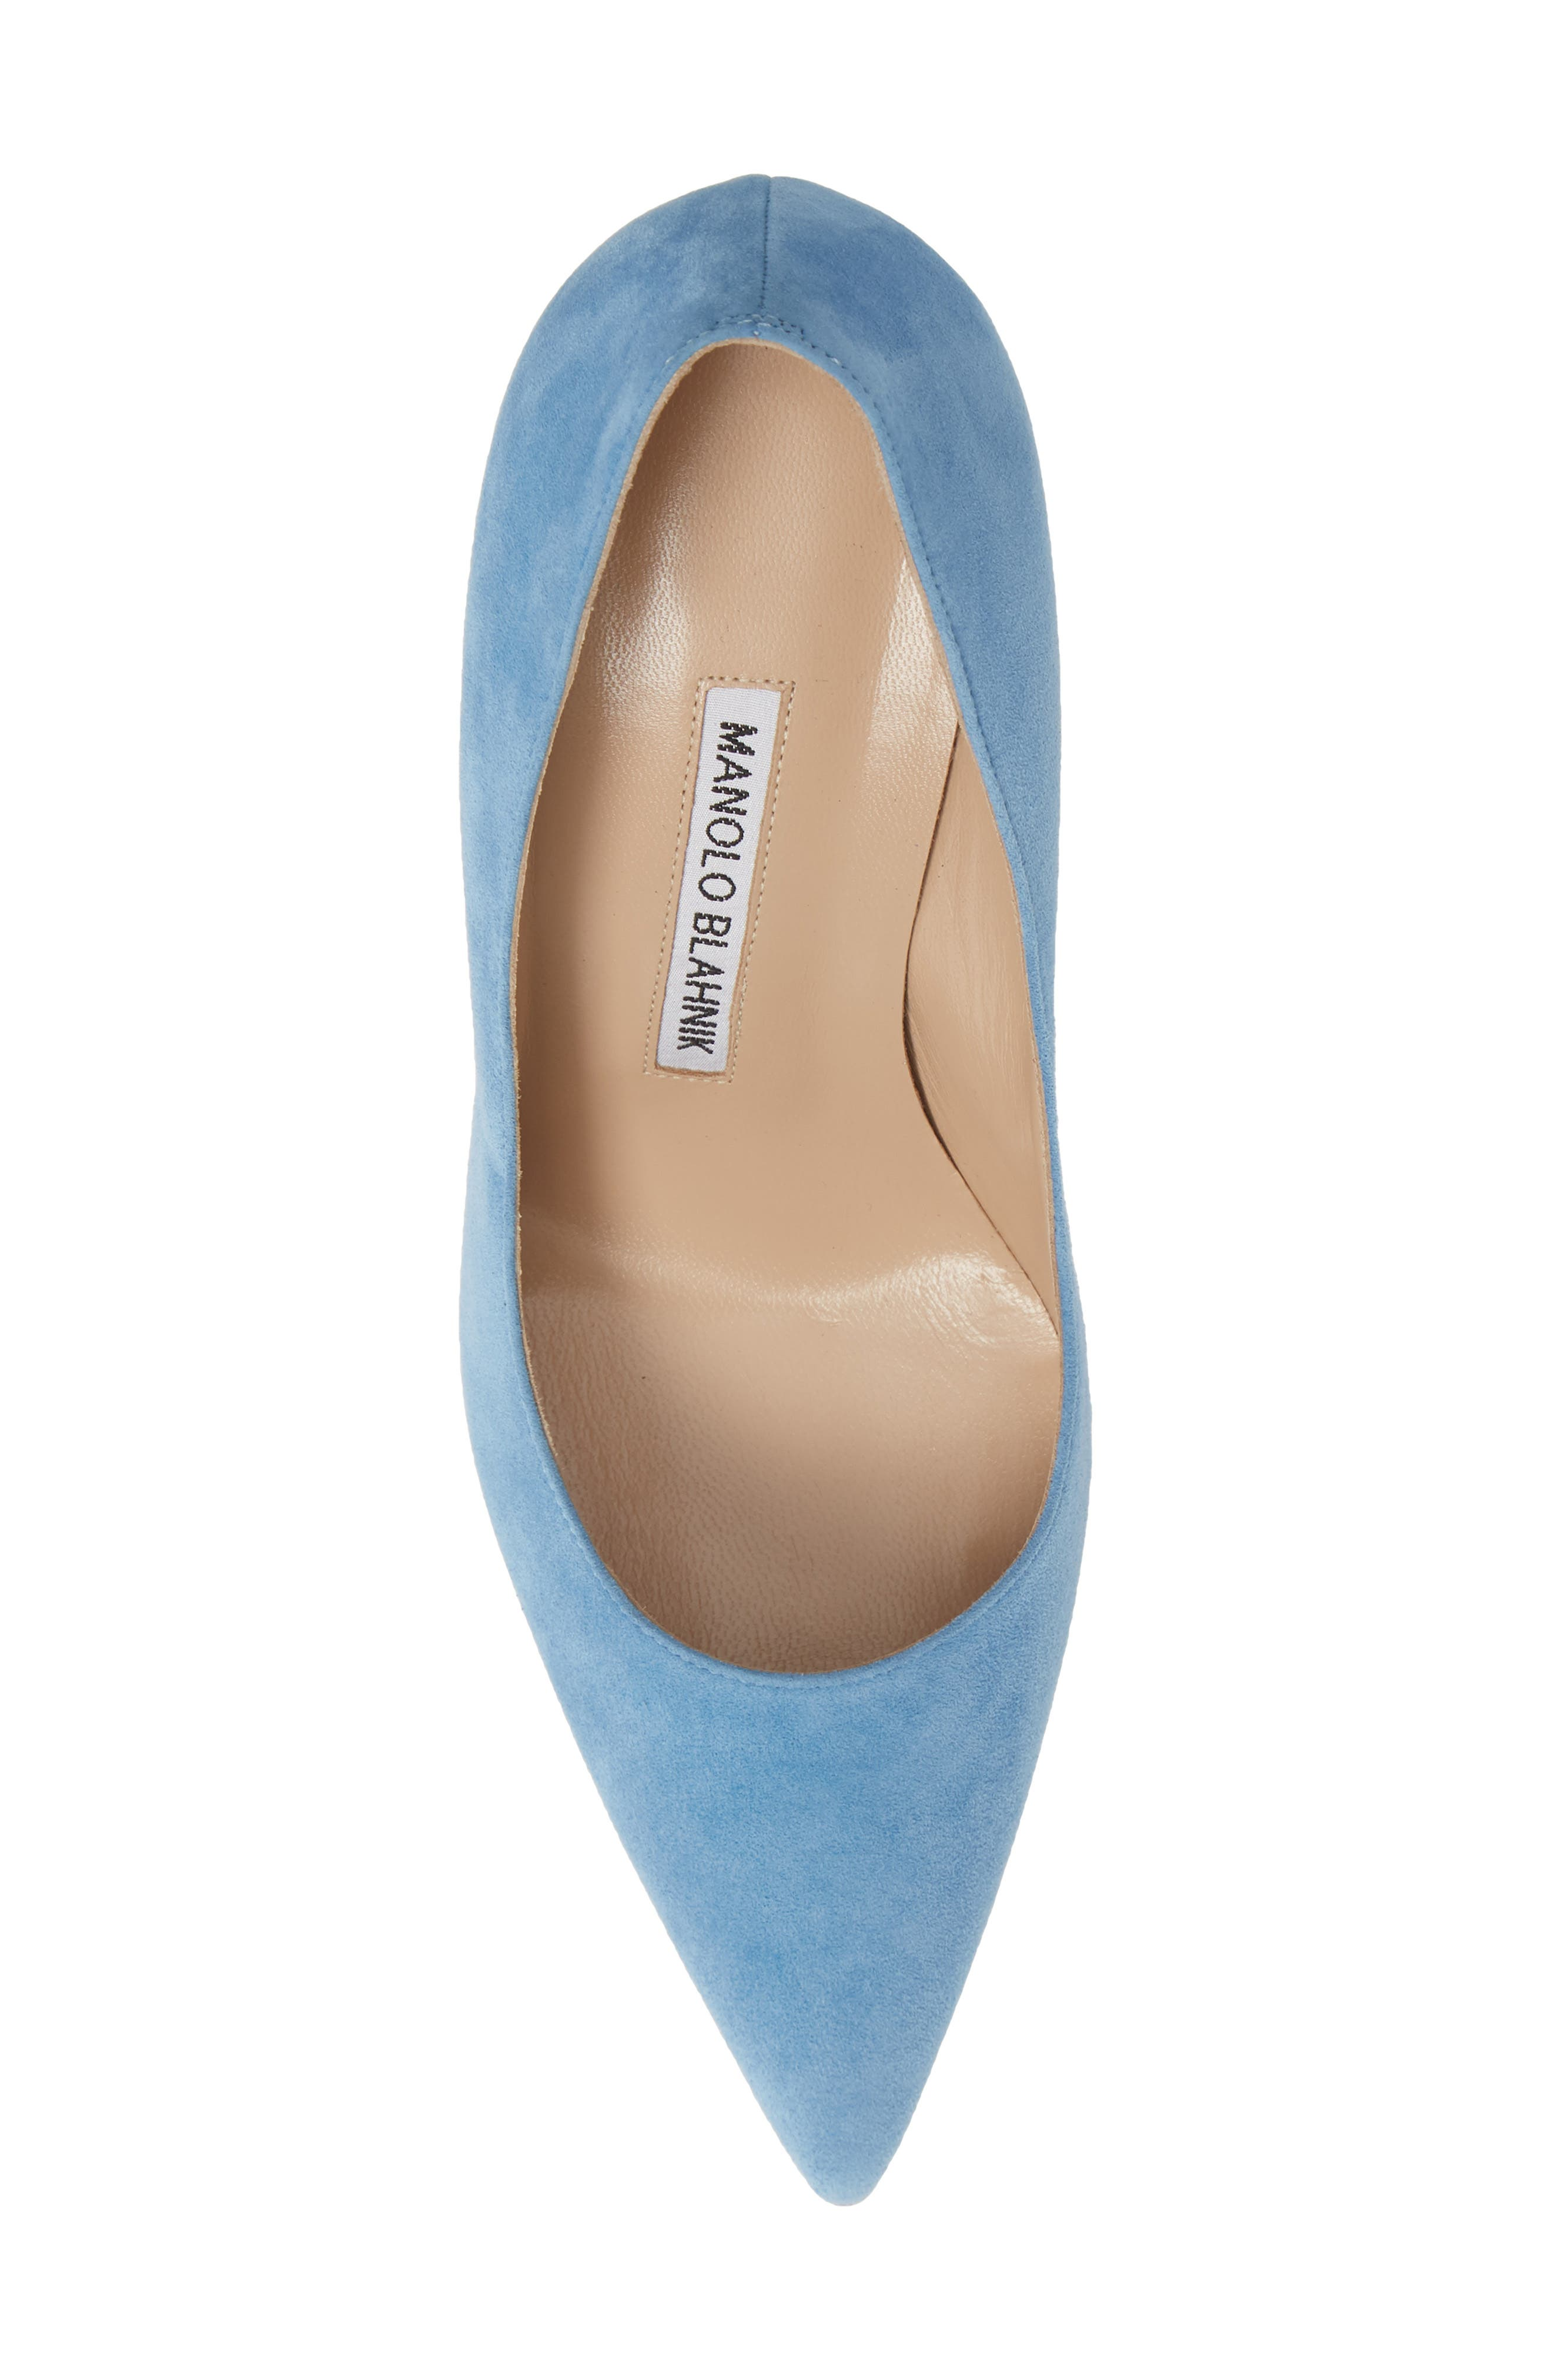 BB Pointy Toe Pump,                             Alternate thumbnail 5, color,                             POWDER BLUE SUEDE